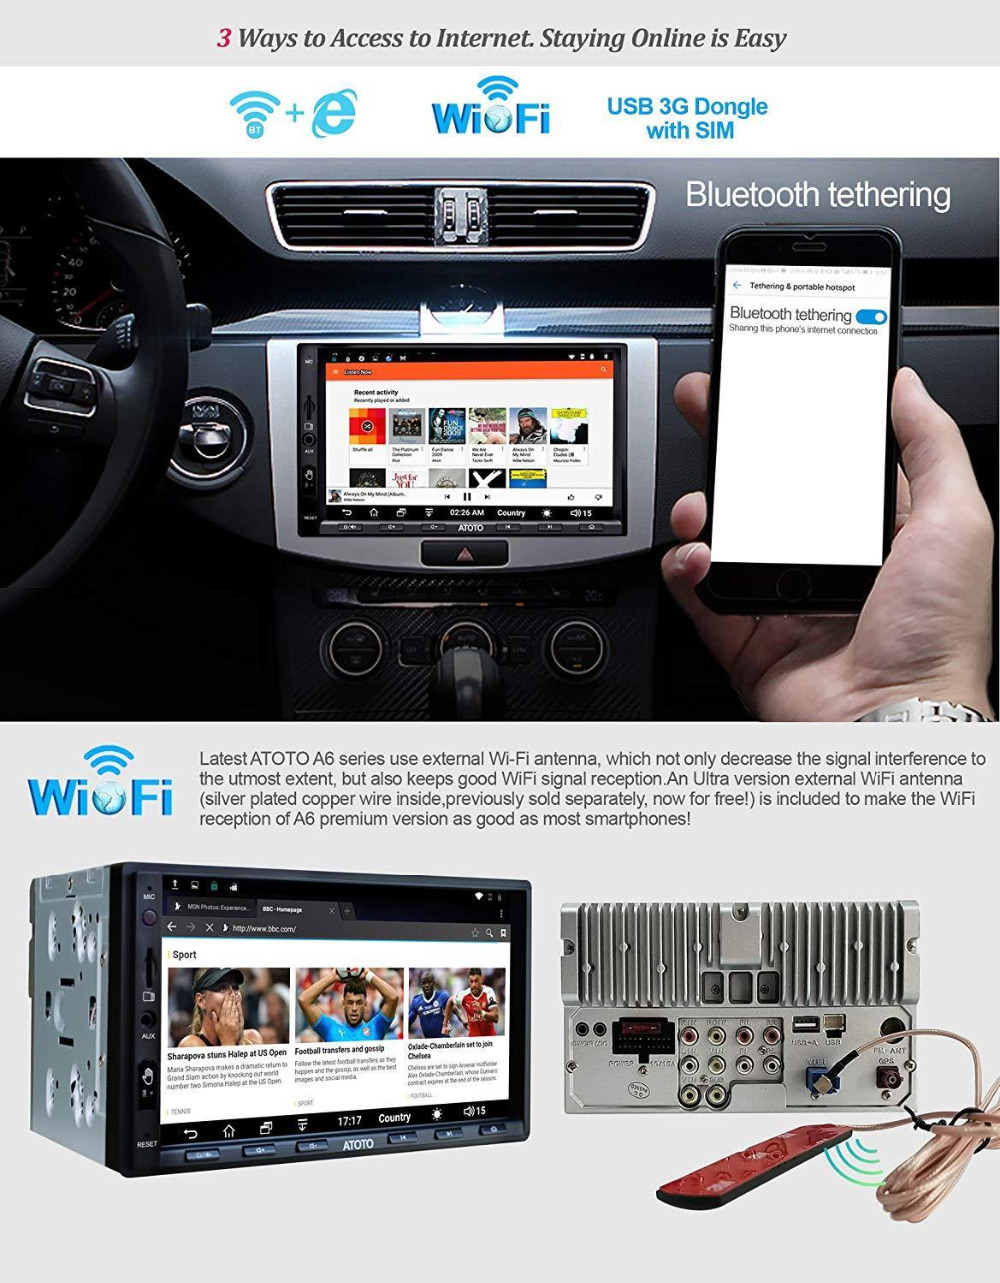 ATOTO A6 2 Din Android Car GPS Stereo Player/2x Bluetooth/A6Y2721PRB-G/Hands Gesture Operation /Indash Multimedia Radio/WiFi USB